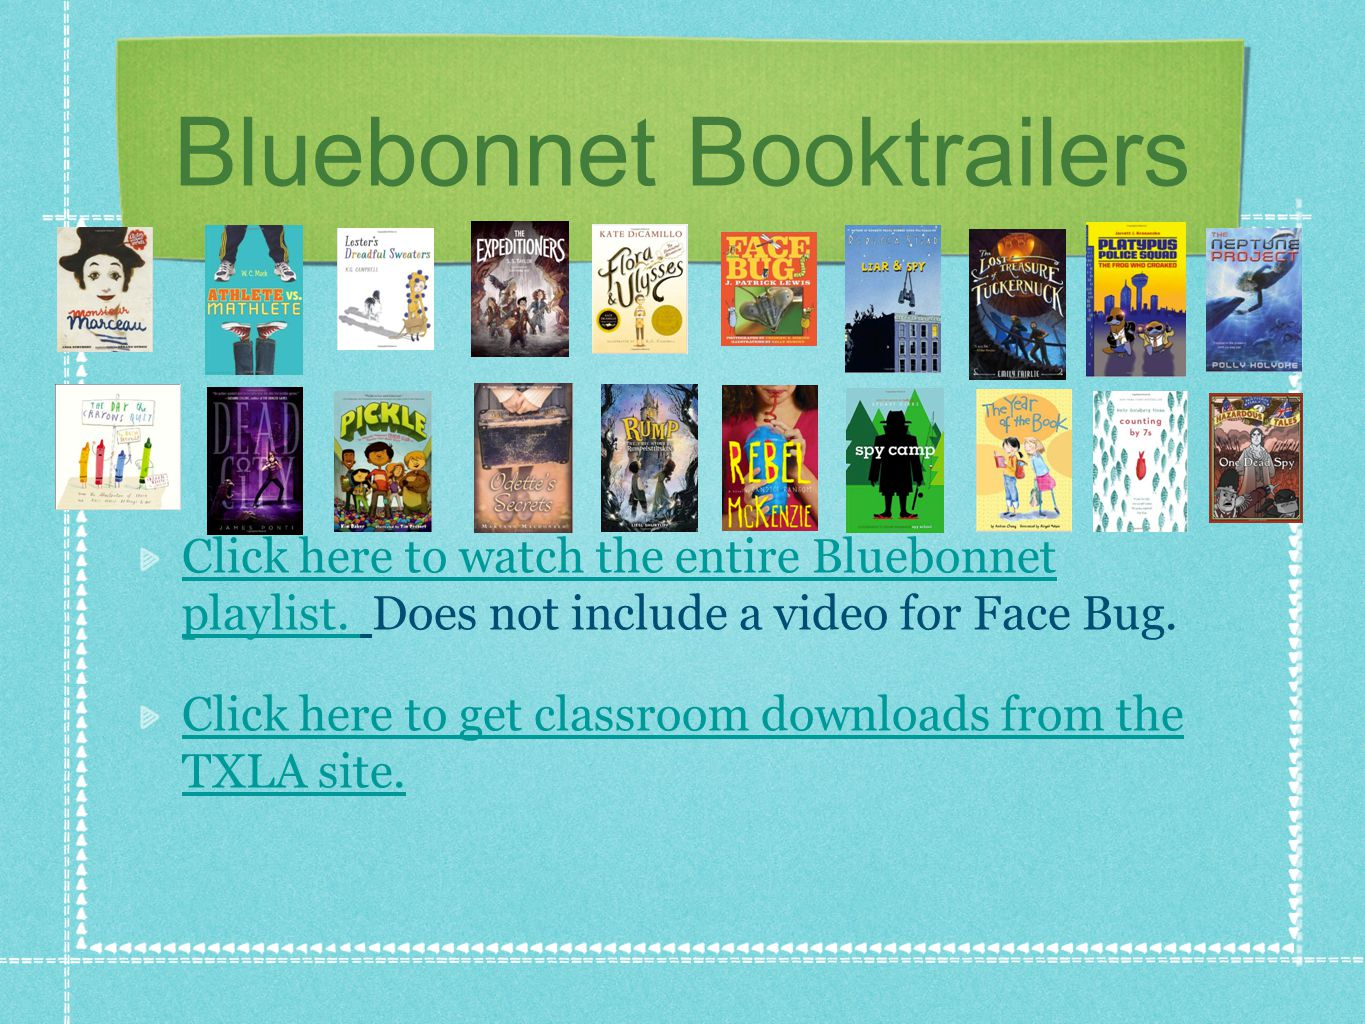 Bluebonnet Booktrailers Click here to watch the entire Bluebonnet playlist.